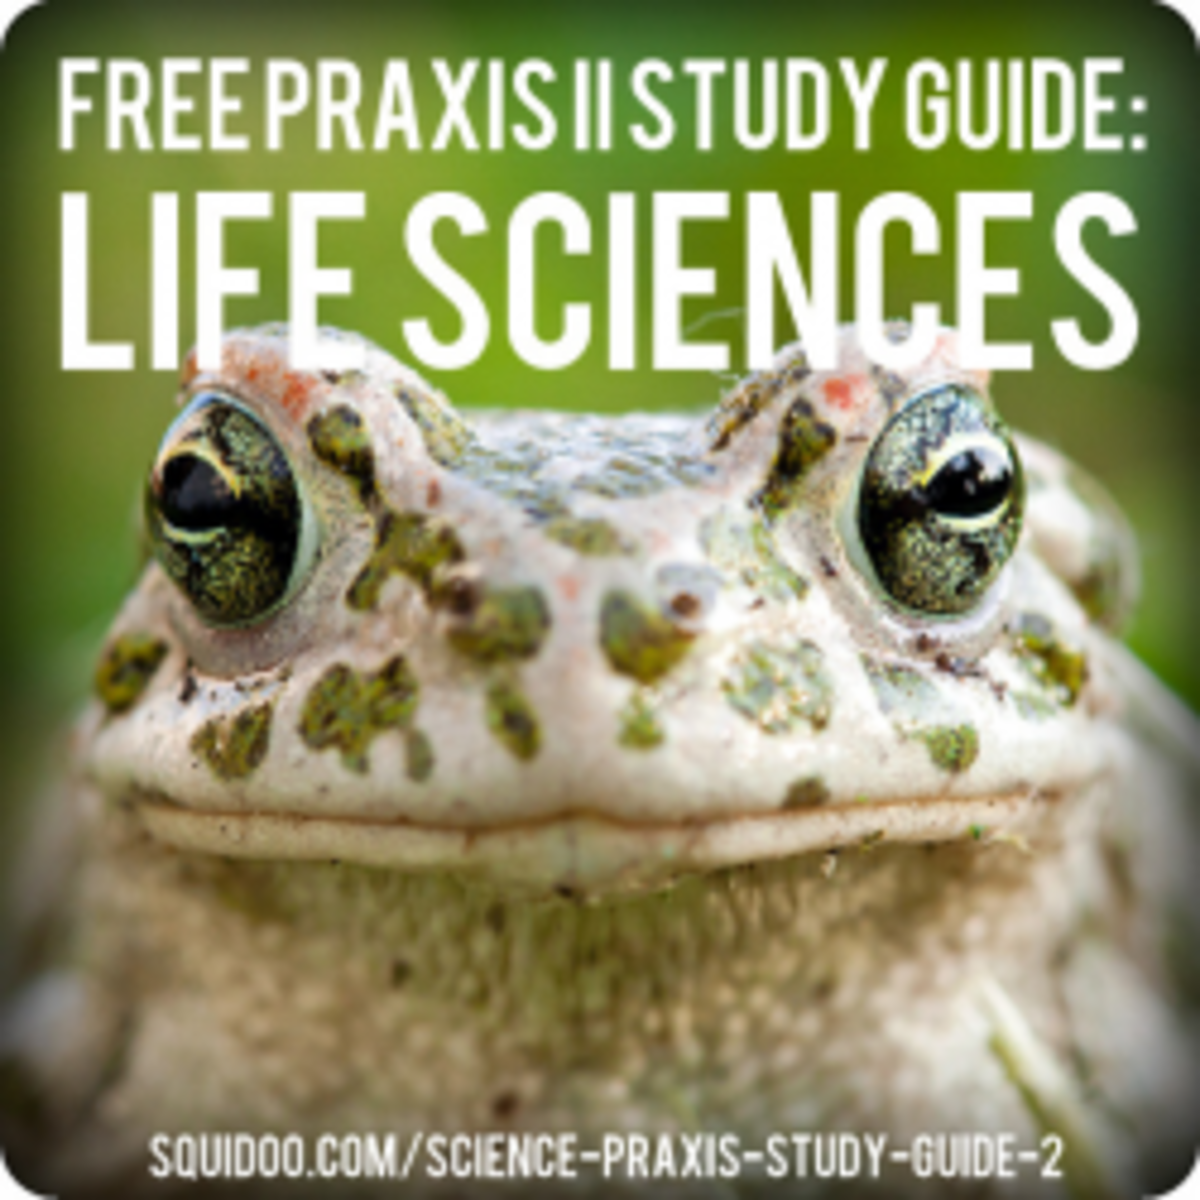 Free PRAXIS II Life Sciences Study Guide